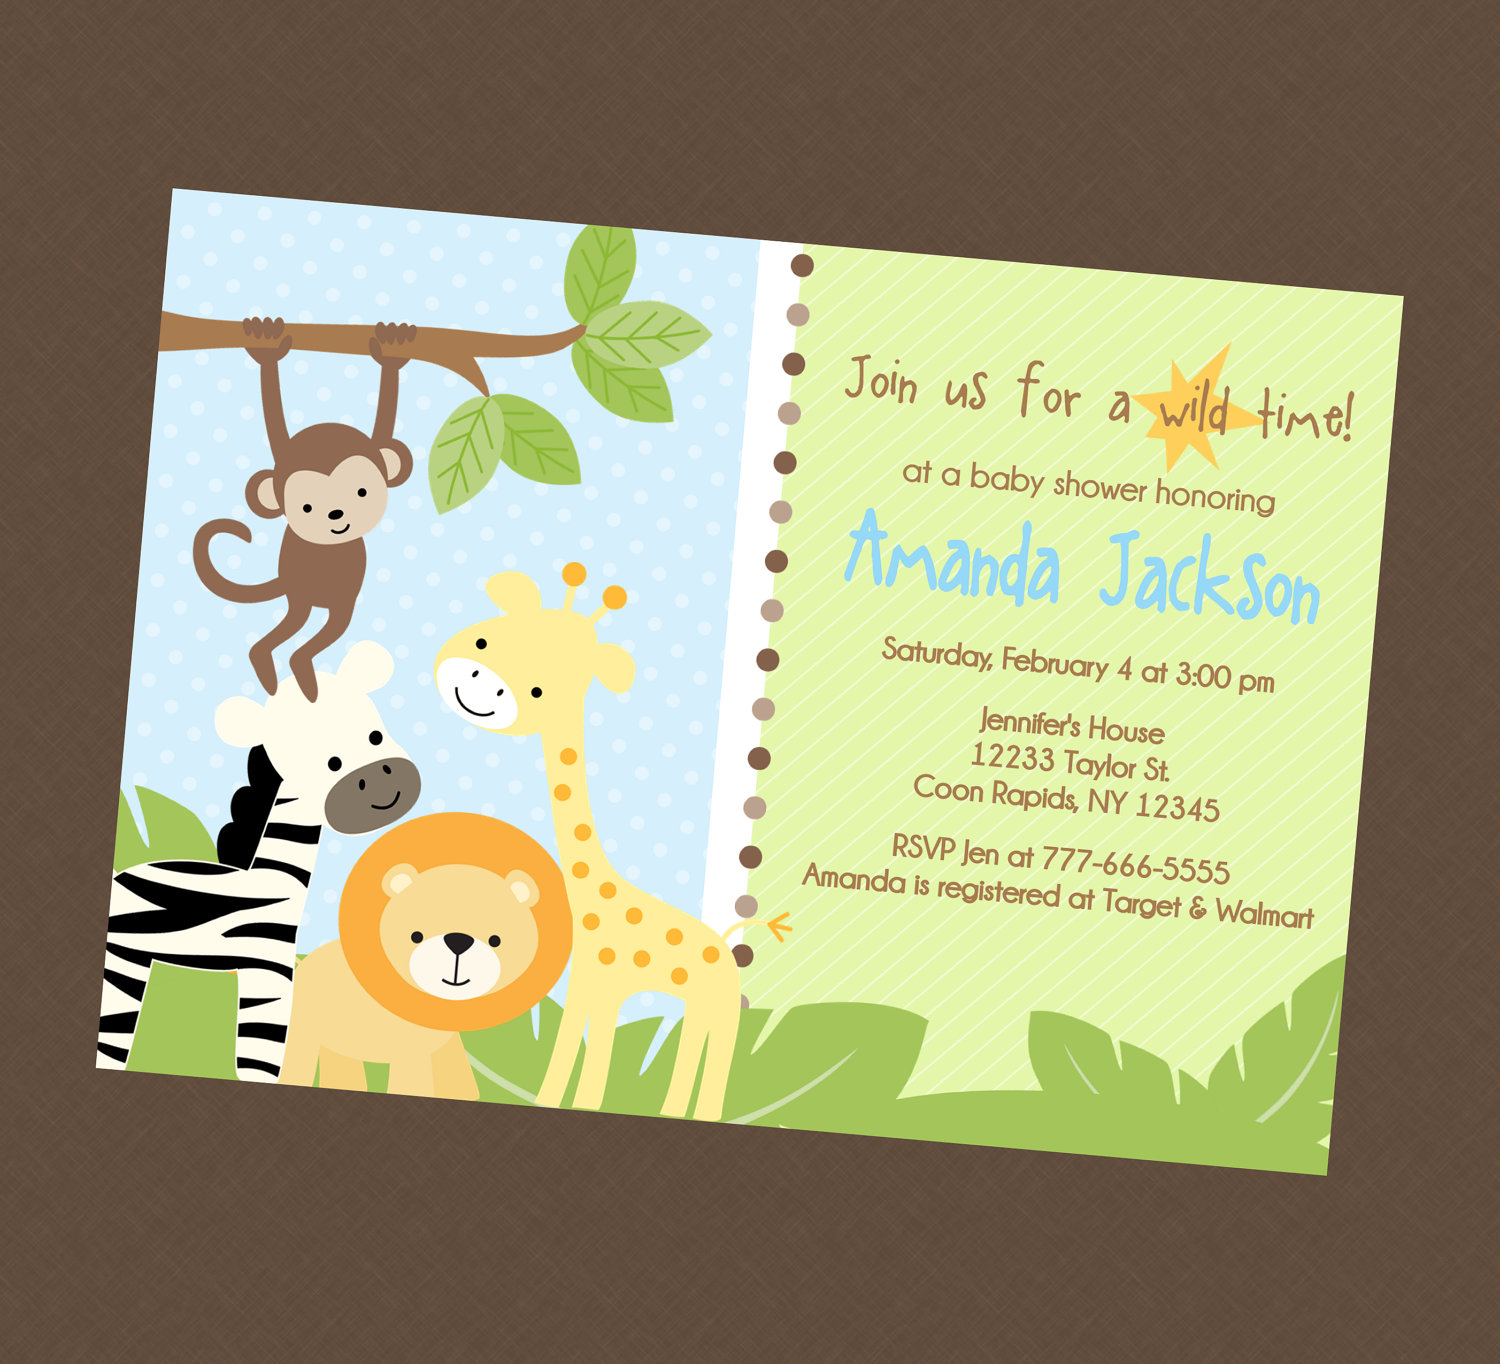 Jungle Safari Baby Shower Invitations N2 Free Image